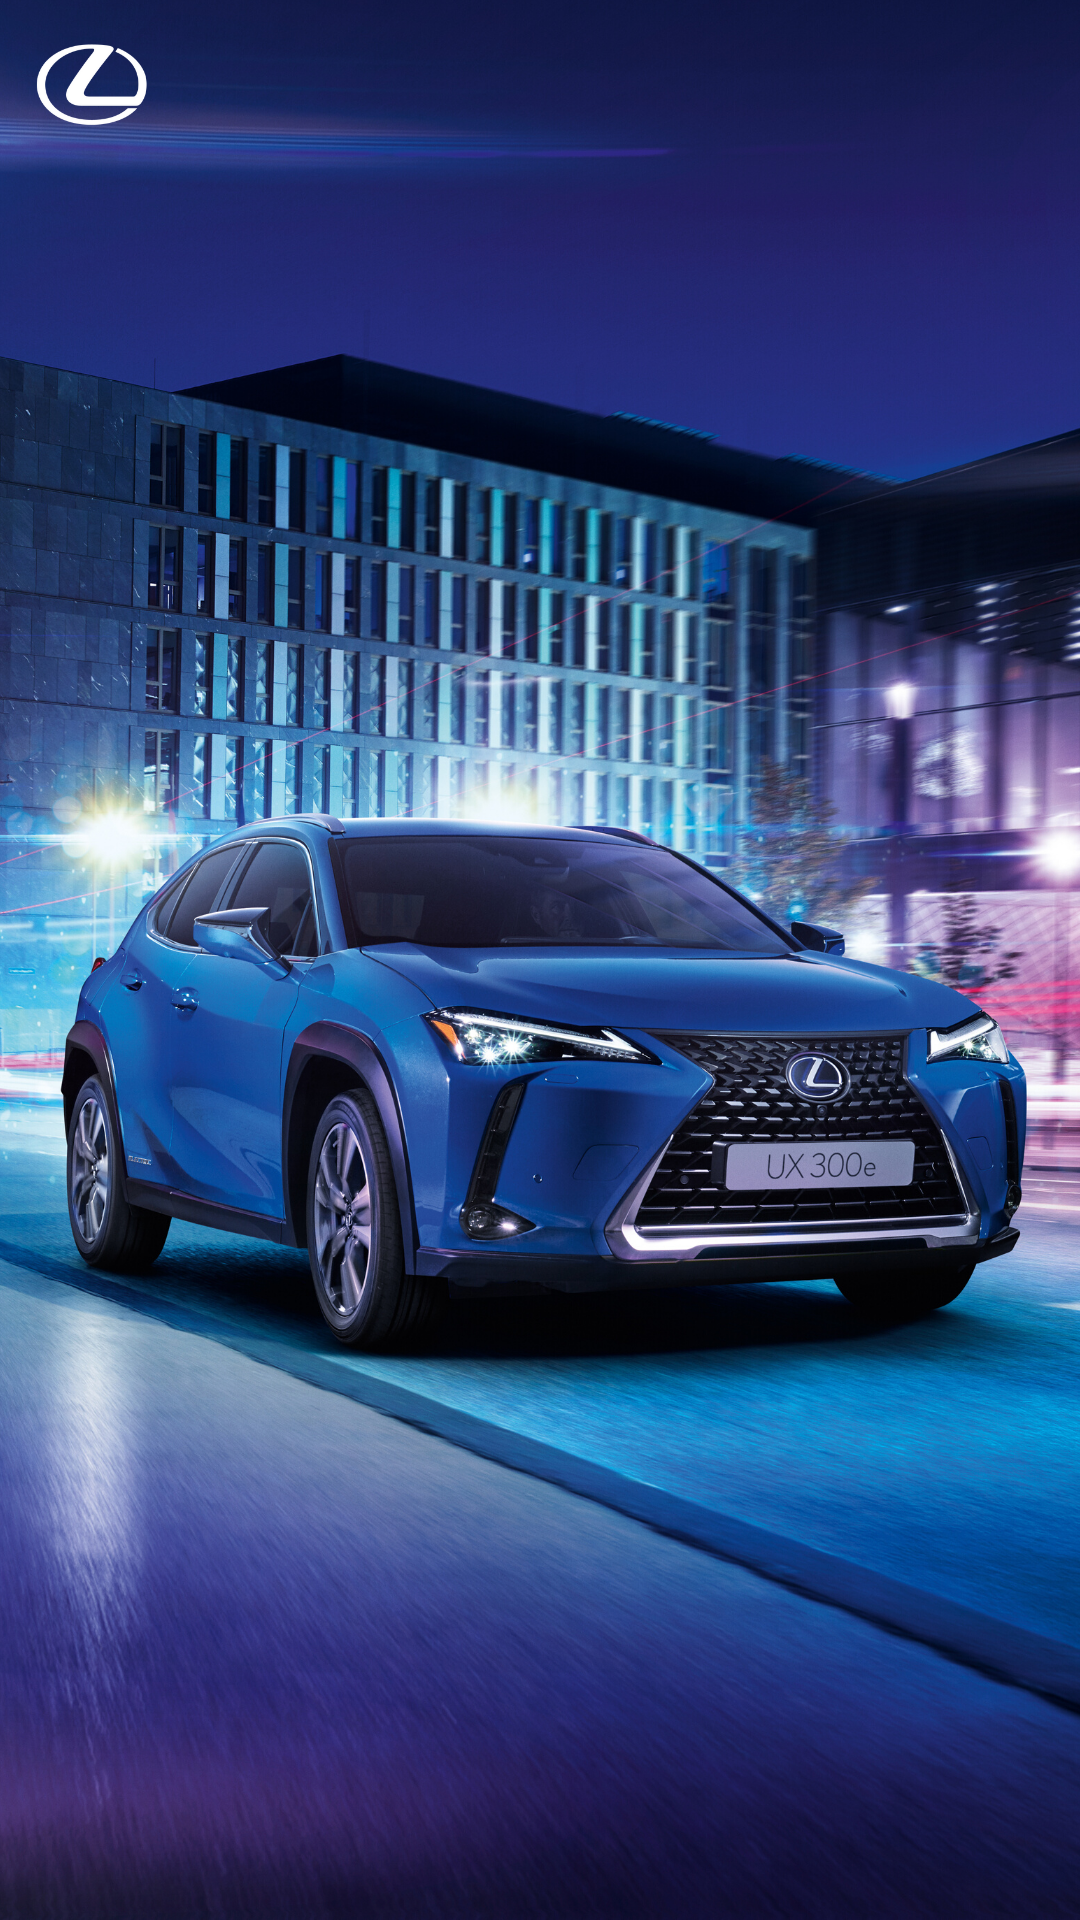 The new Lexus UX 300e electric car carries over the distinctive styling and high functionality of the Lexus UX compact SUV for excellent on-road performance. Click to find out more. #Lexus #LexusUX #UX300e #ElectricCars #NewCars #Electric #LuxuryCars #SUV #LuxurySUV #FamilySUV